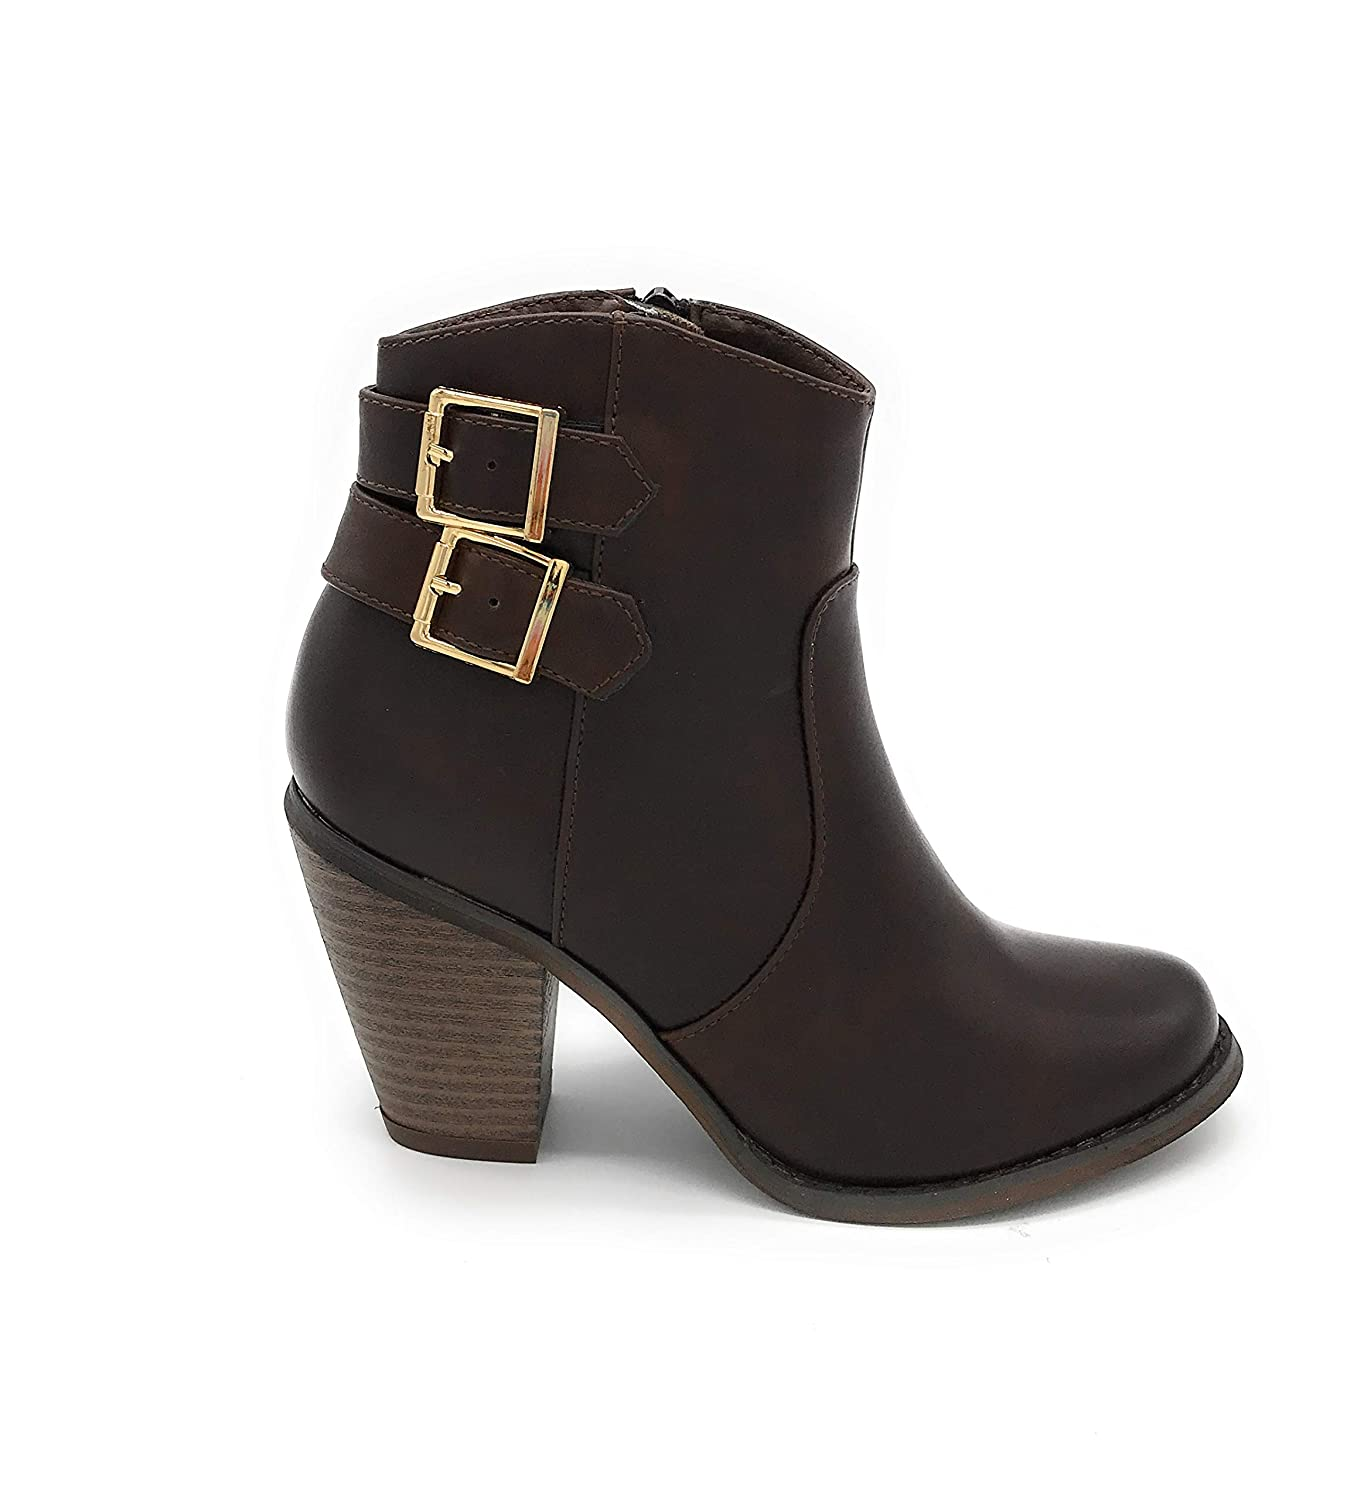 01brown bluee Berry EASY21 Women Fashion Ankle Boots Casual Short Bootie shoes